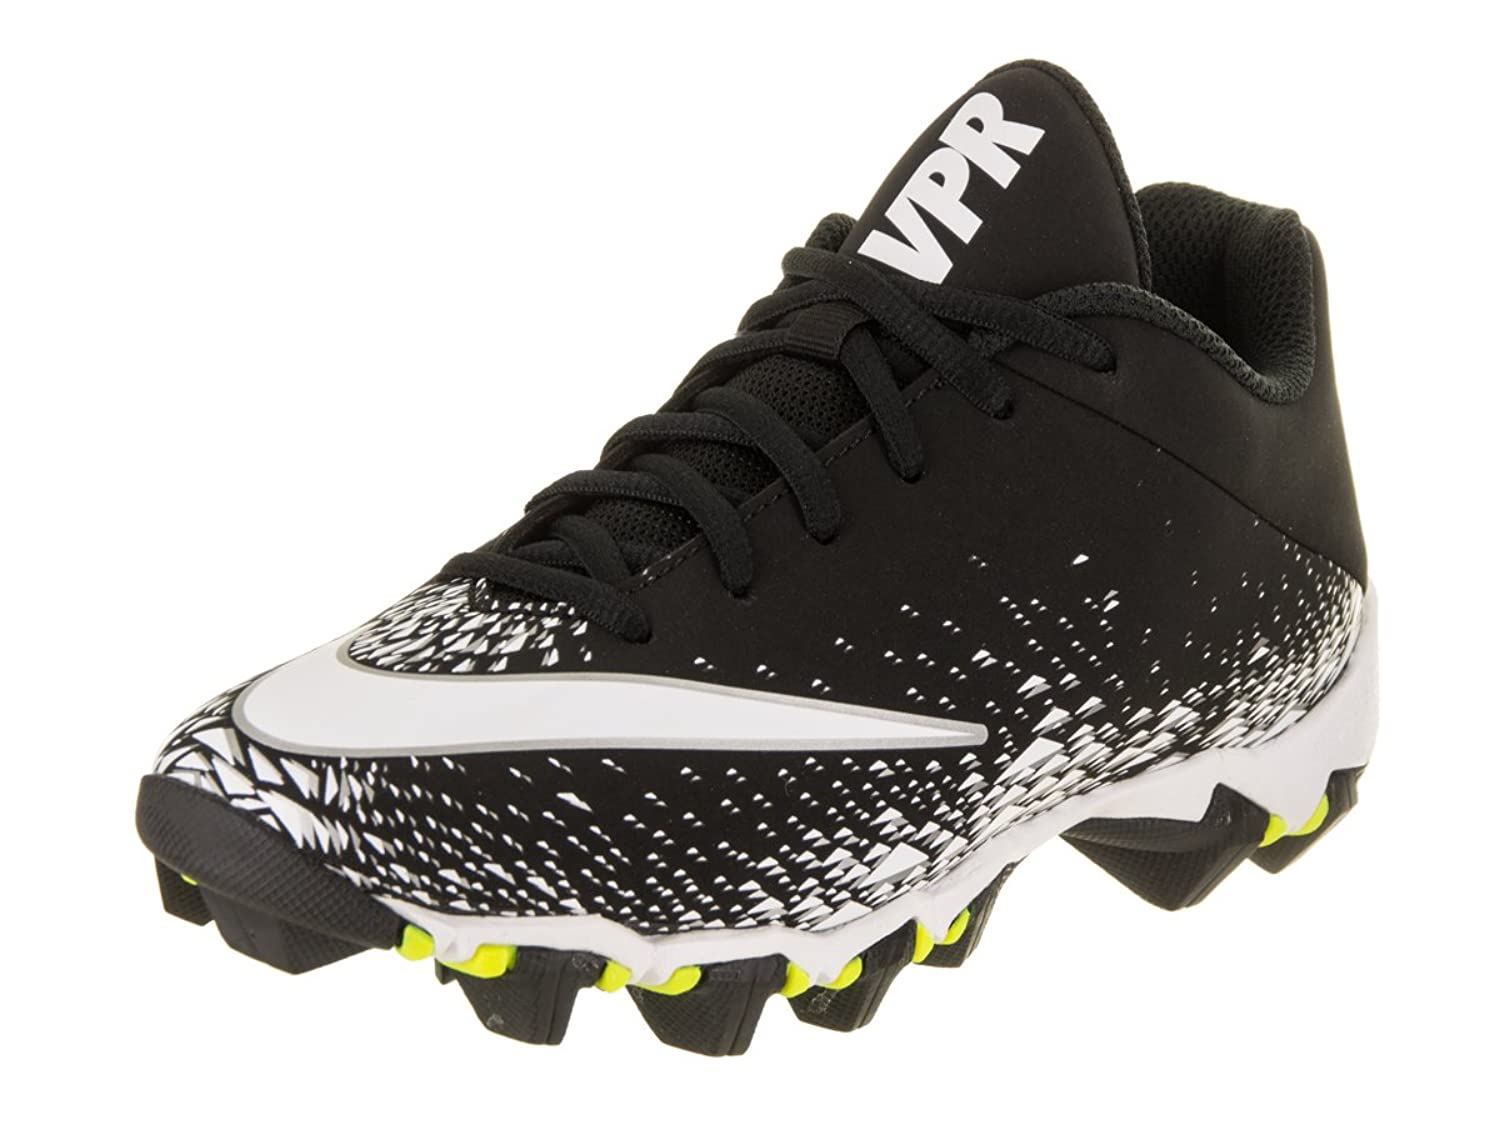 Best Nike Football Shoes High Black Red Online Factory Outlet Store 7qnvflncb